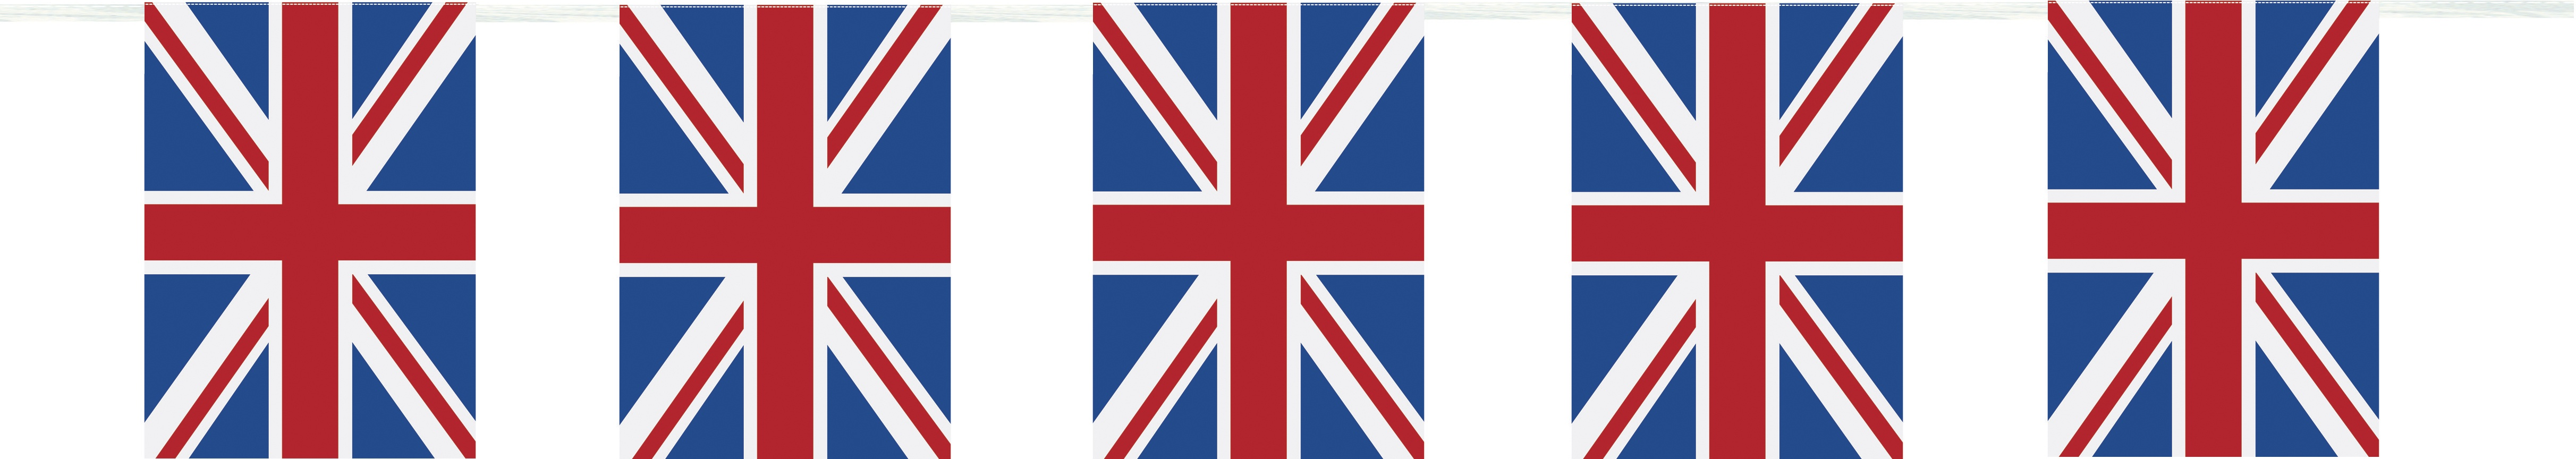 Union jack flaggenkette 3 meter lang party extra for England deko